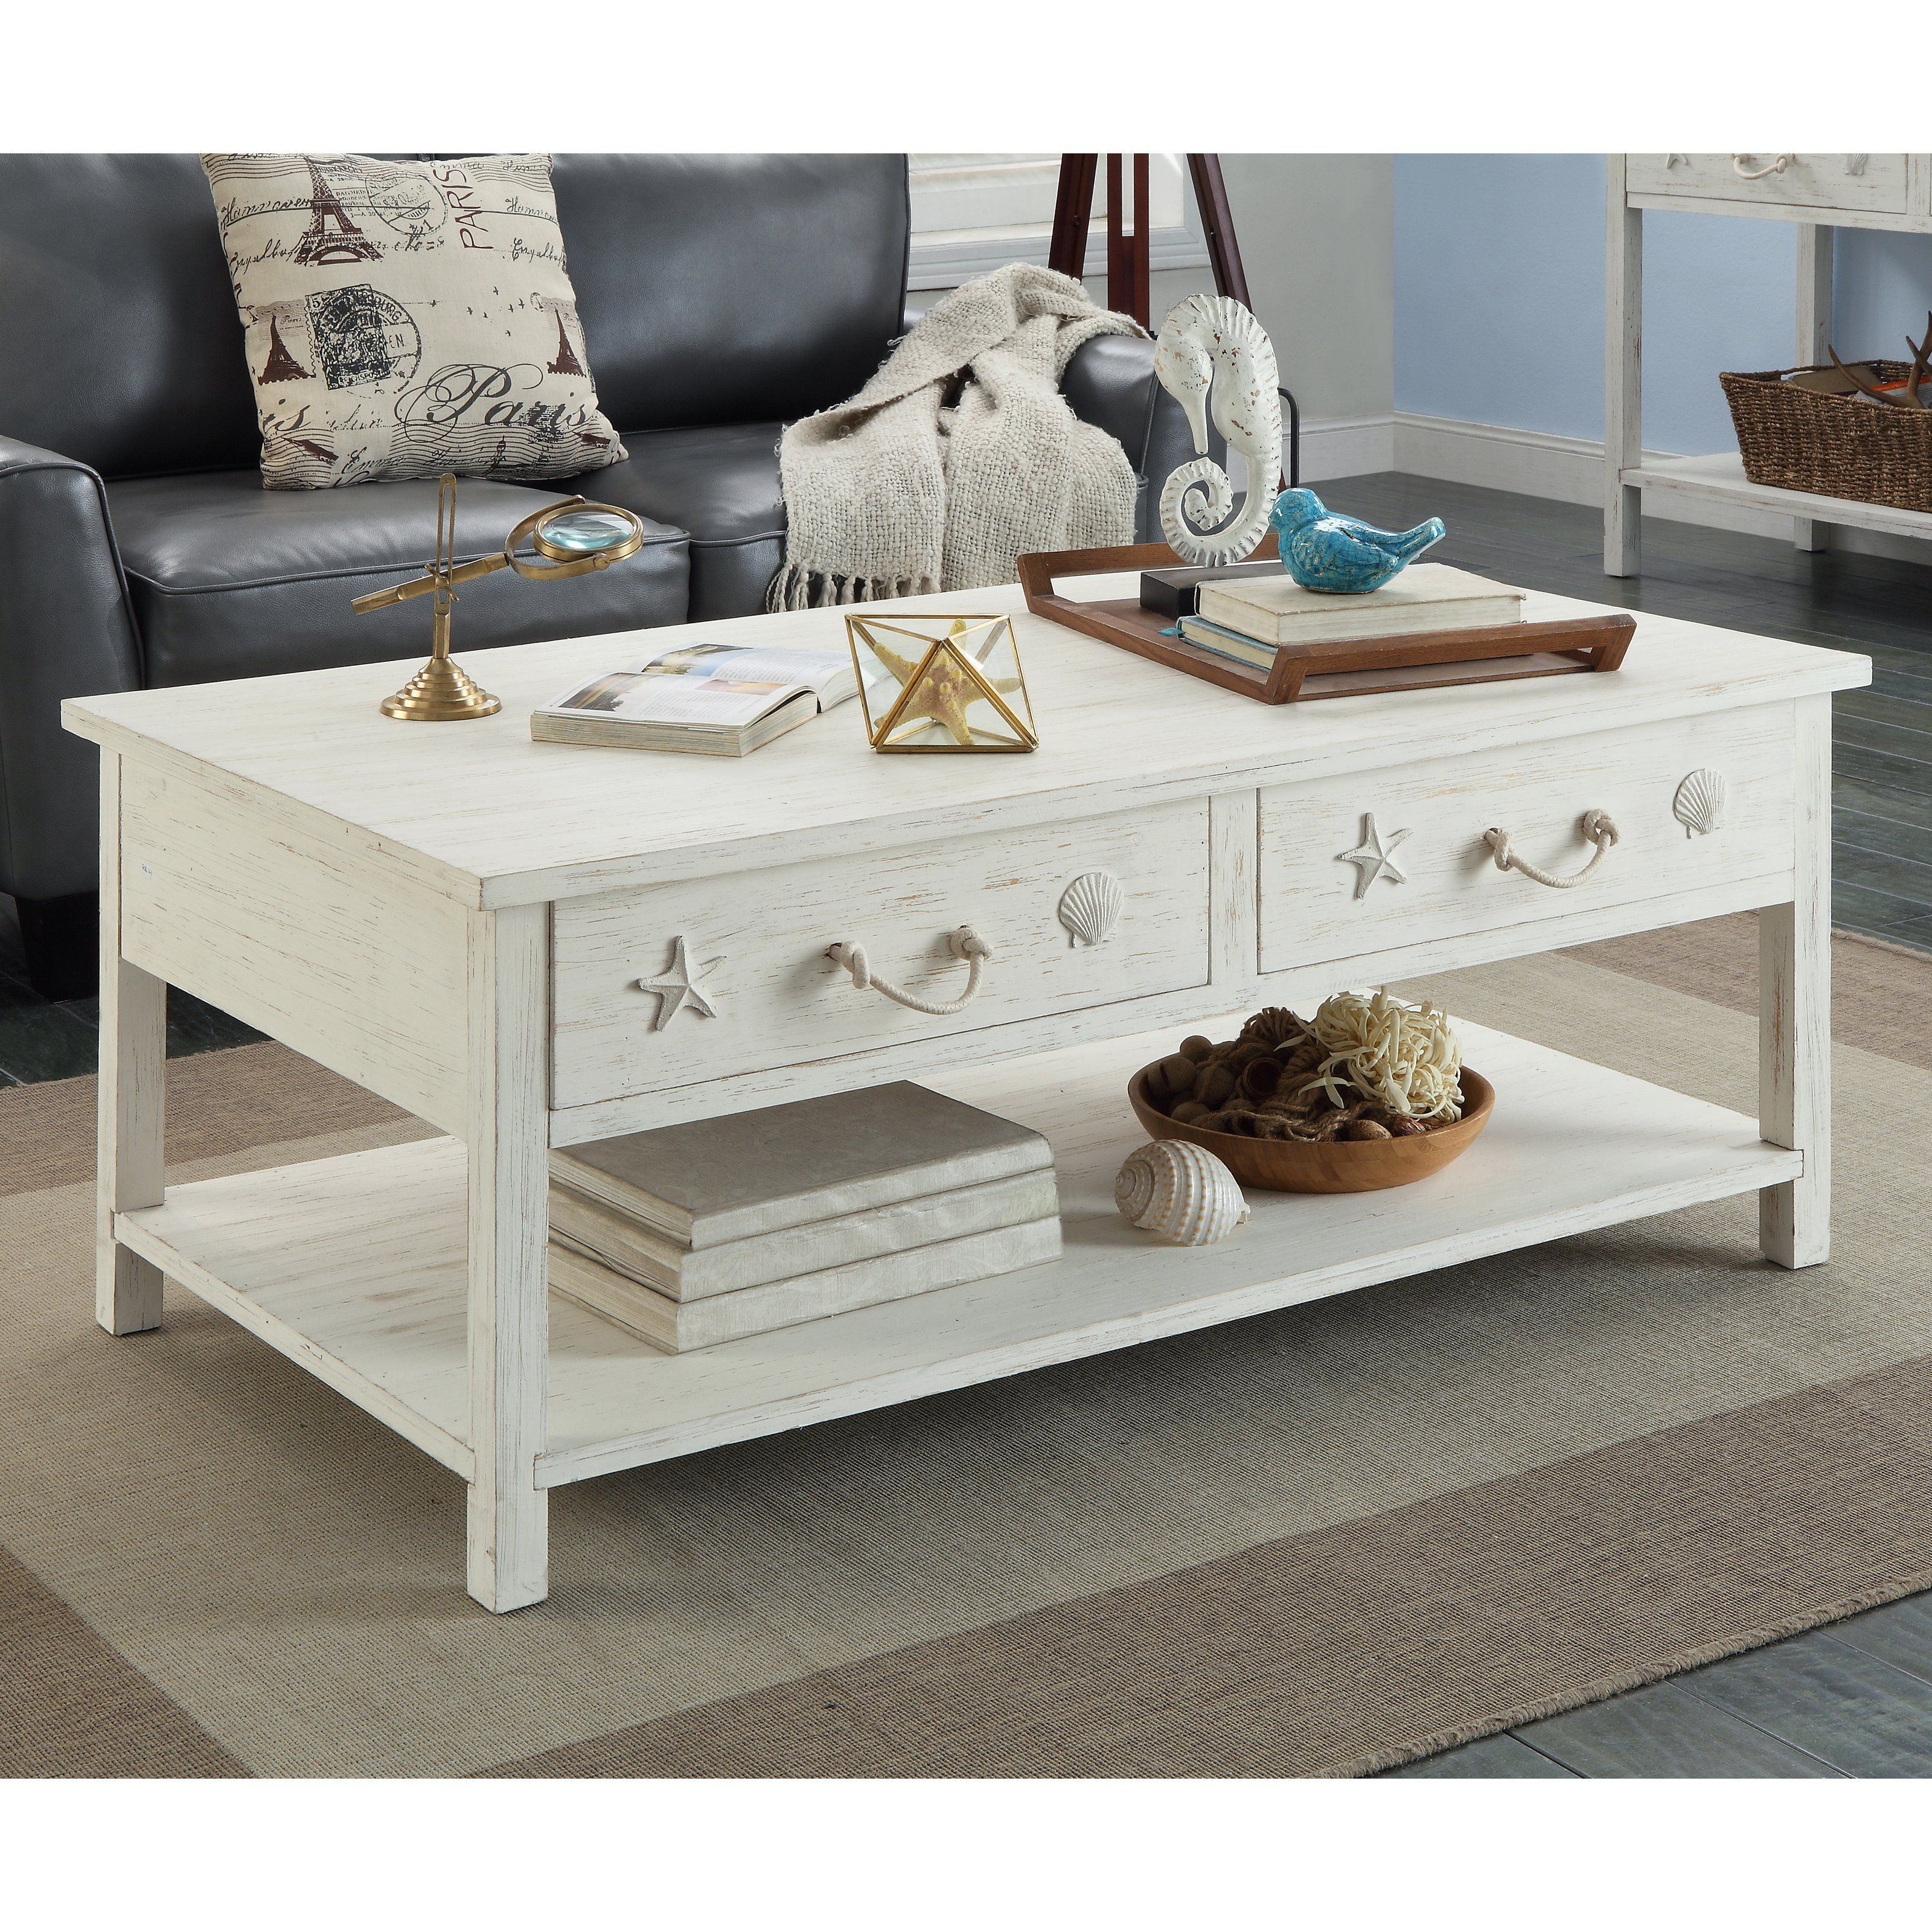 Coast to coast sanibel rectangle cocktail table with